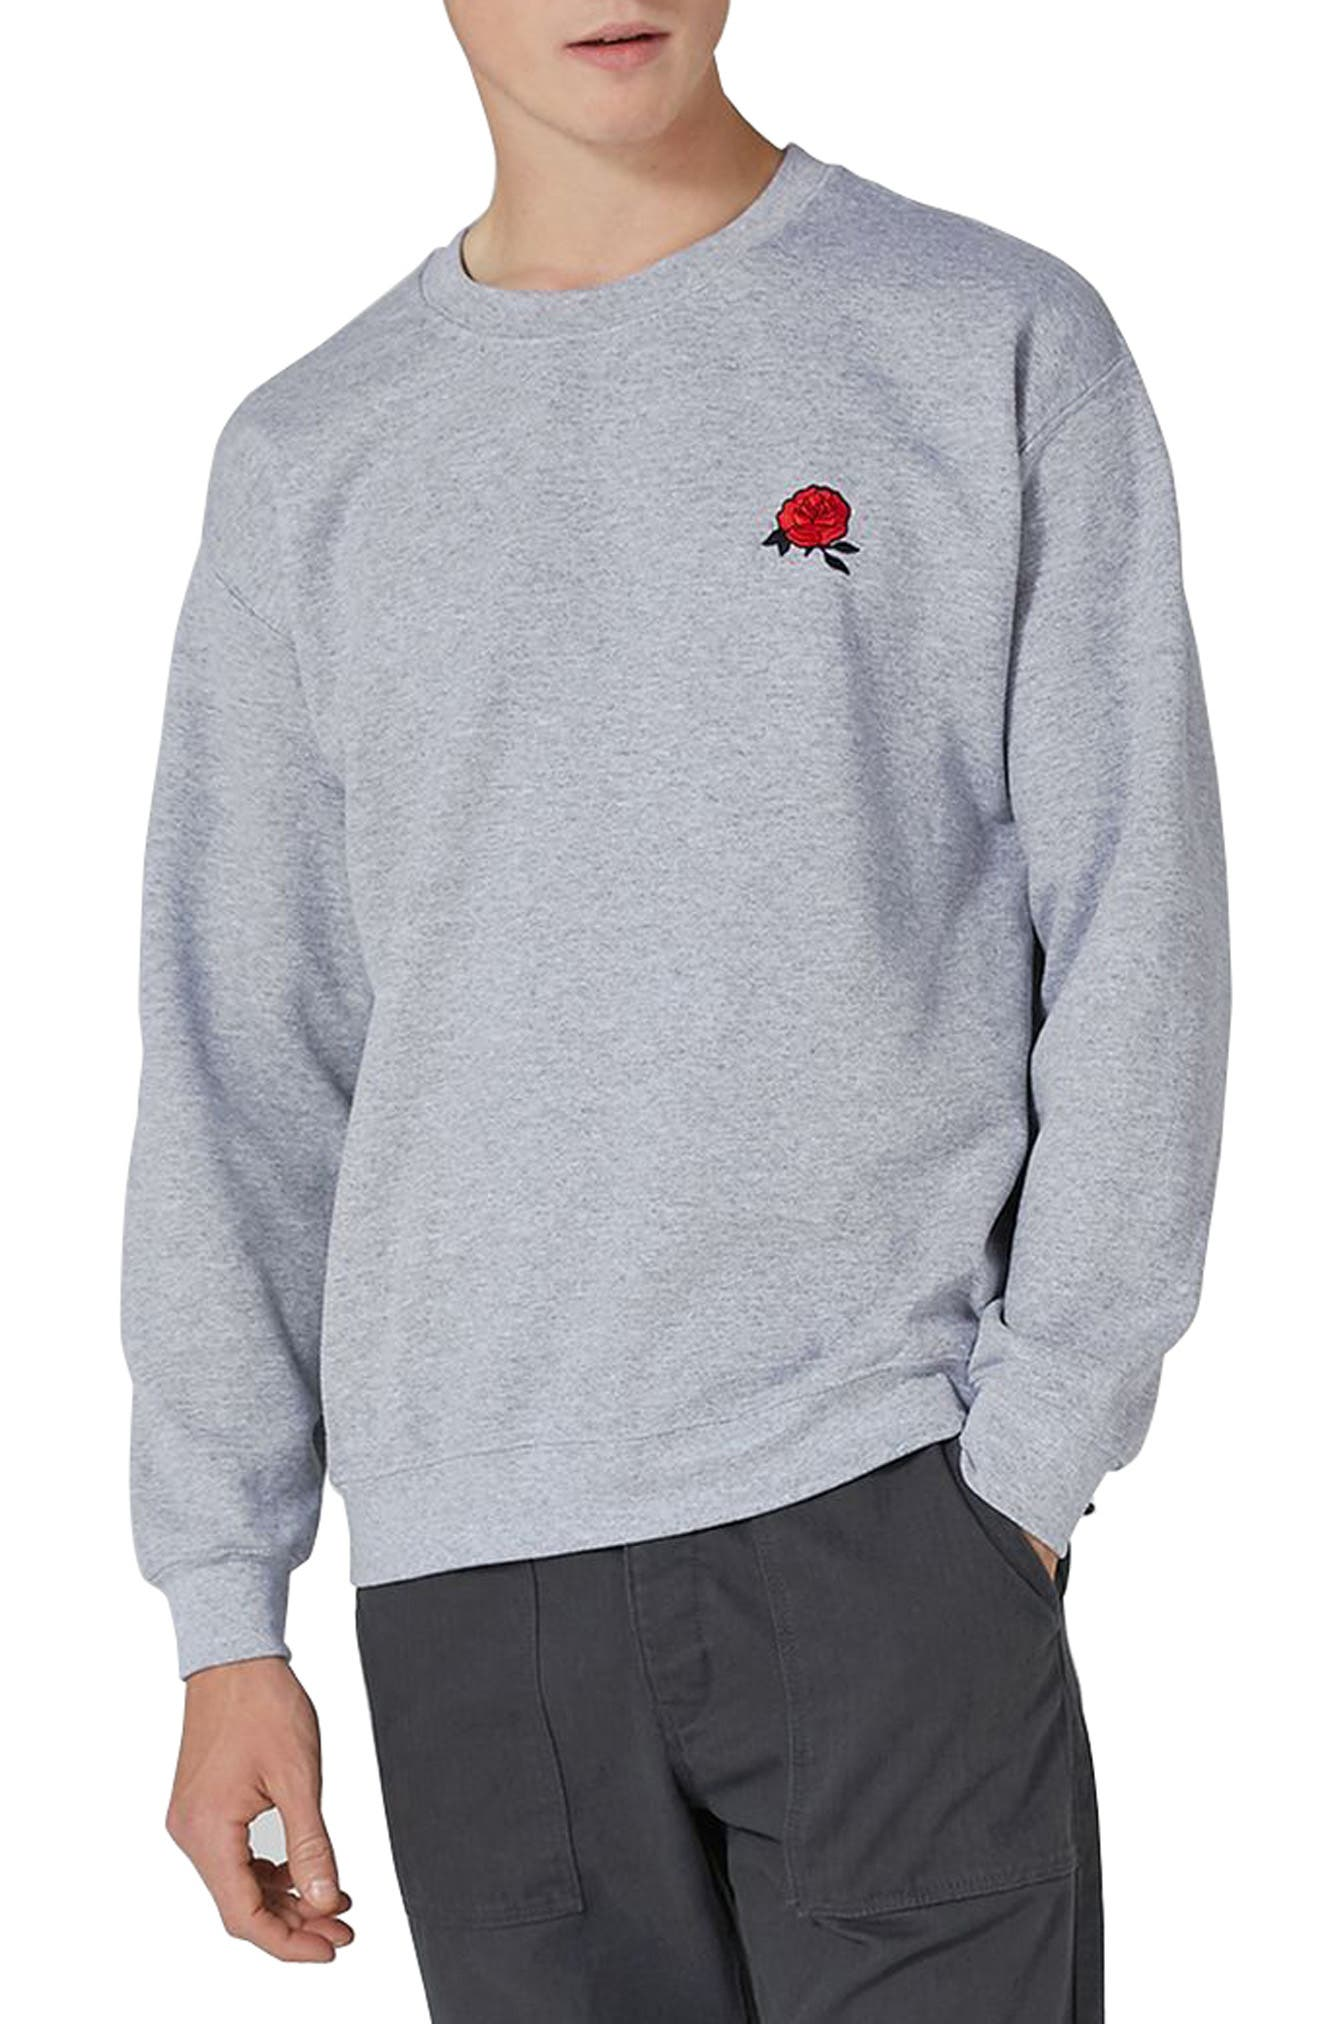 Rose Embroidered Sweatshirt,                         Main,                         color, 050